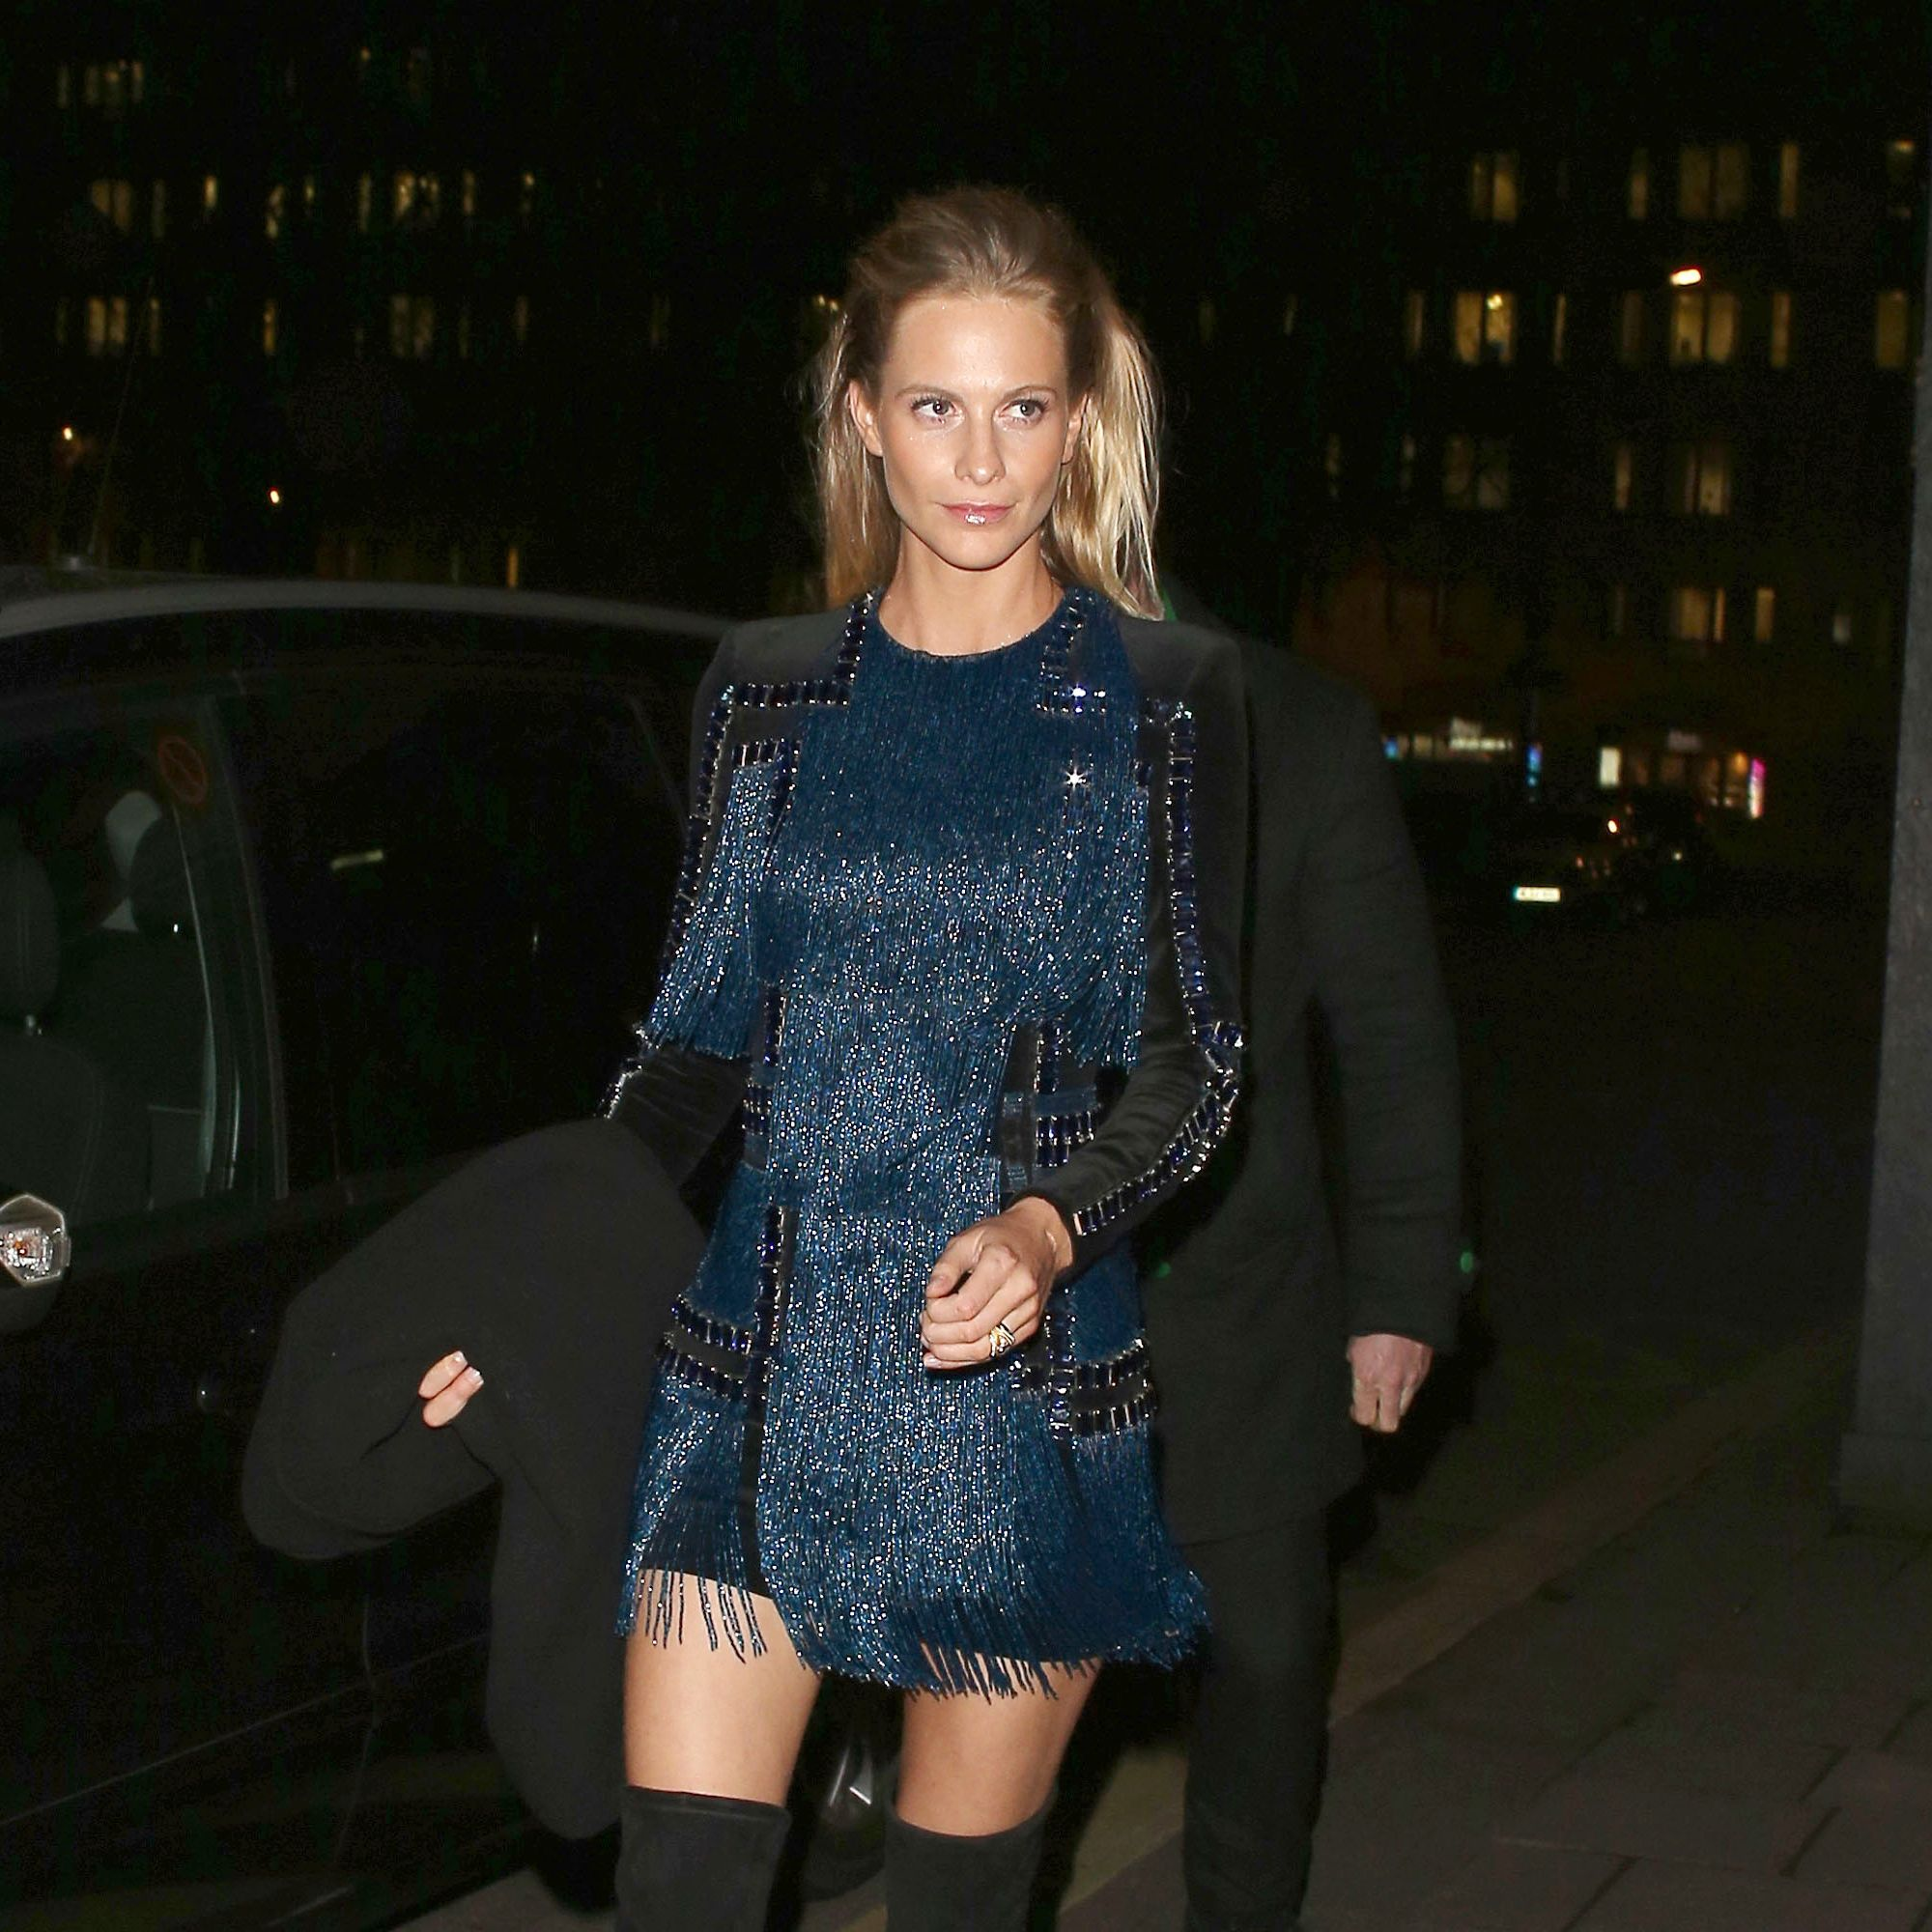 LONDON, UNITED KINGDOM - MARCH 16: Poppy Delevingne attending a party Annabel's club to mark the opening of Balmain's first London store on March 16, 2015 in London, England. (Photo by Mark Robert Milan/GC Images)